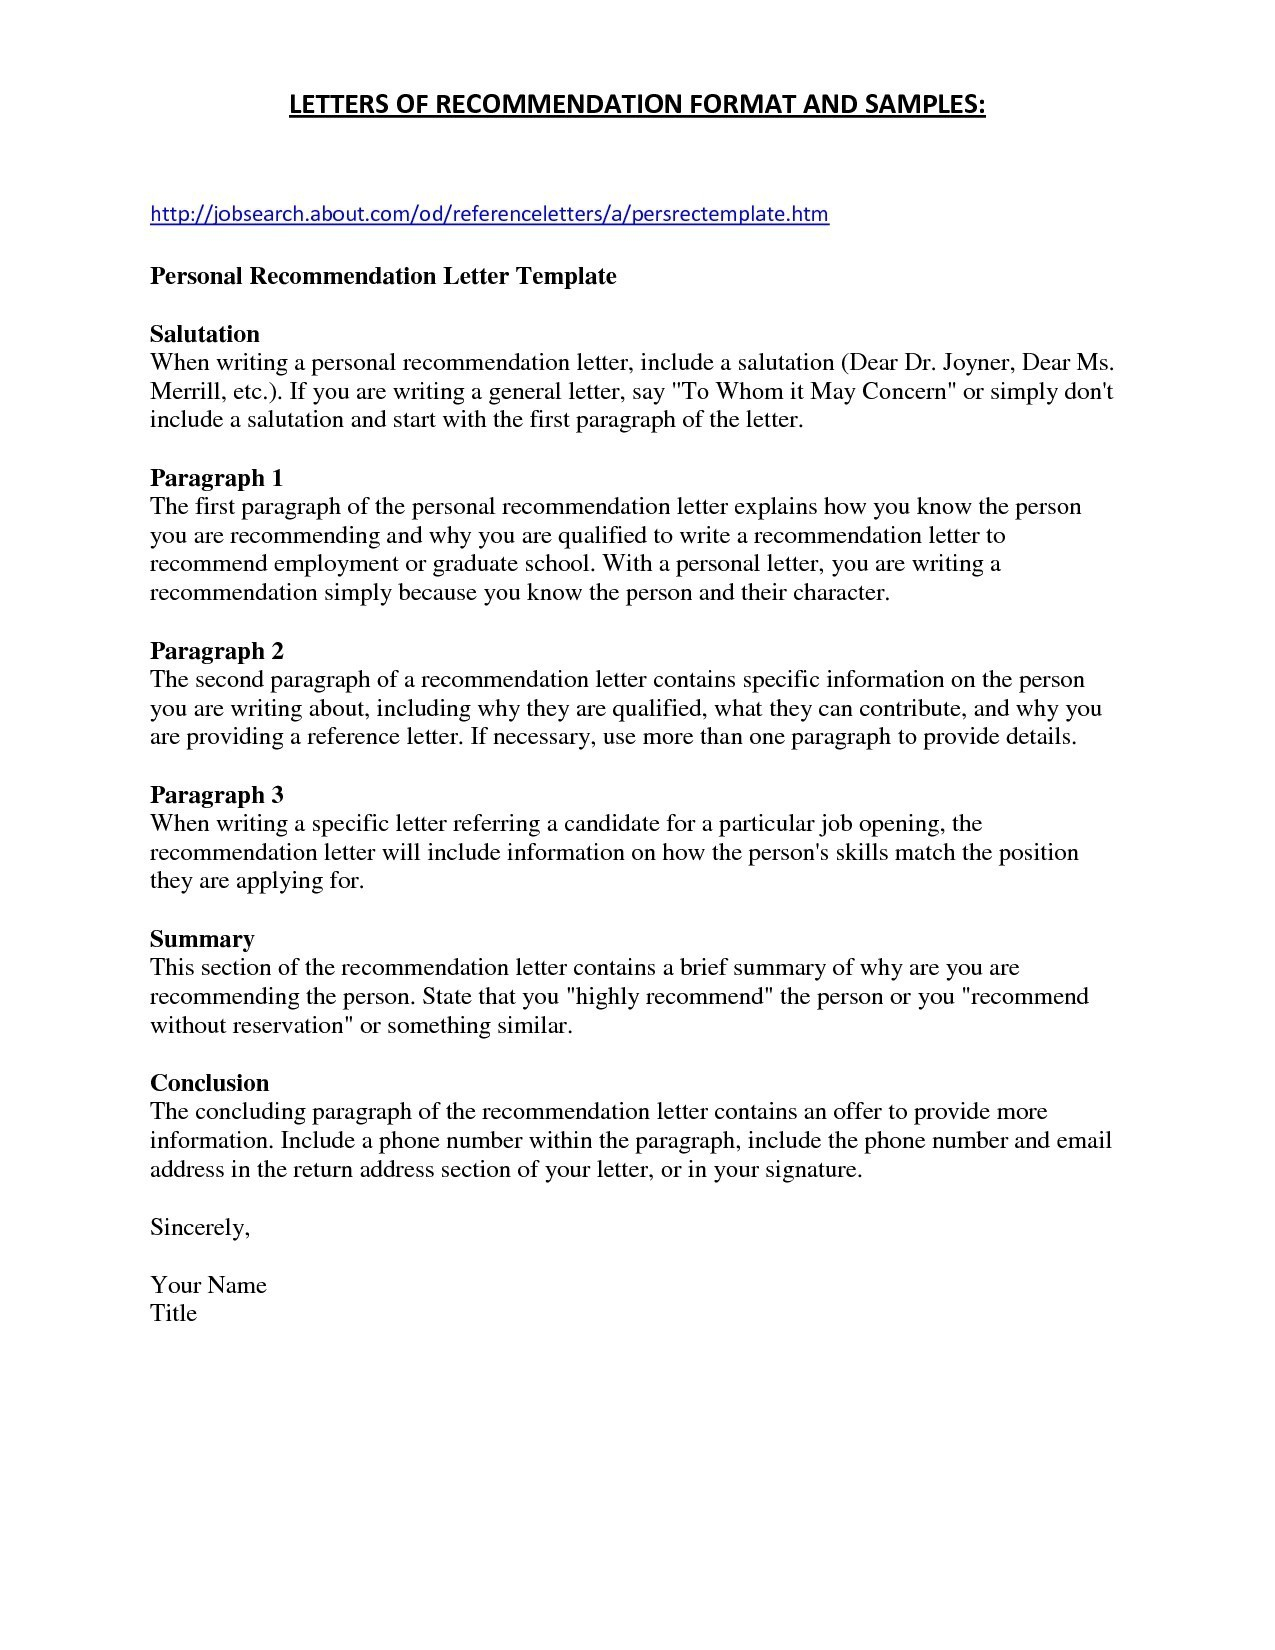 Letter Of Intent Template Microsoft Word - How to Write A Letter Intent for A Job Refrence Non Binding